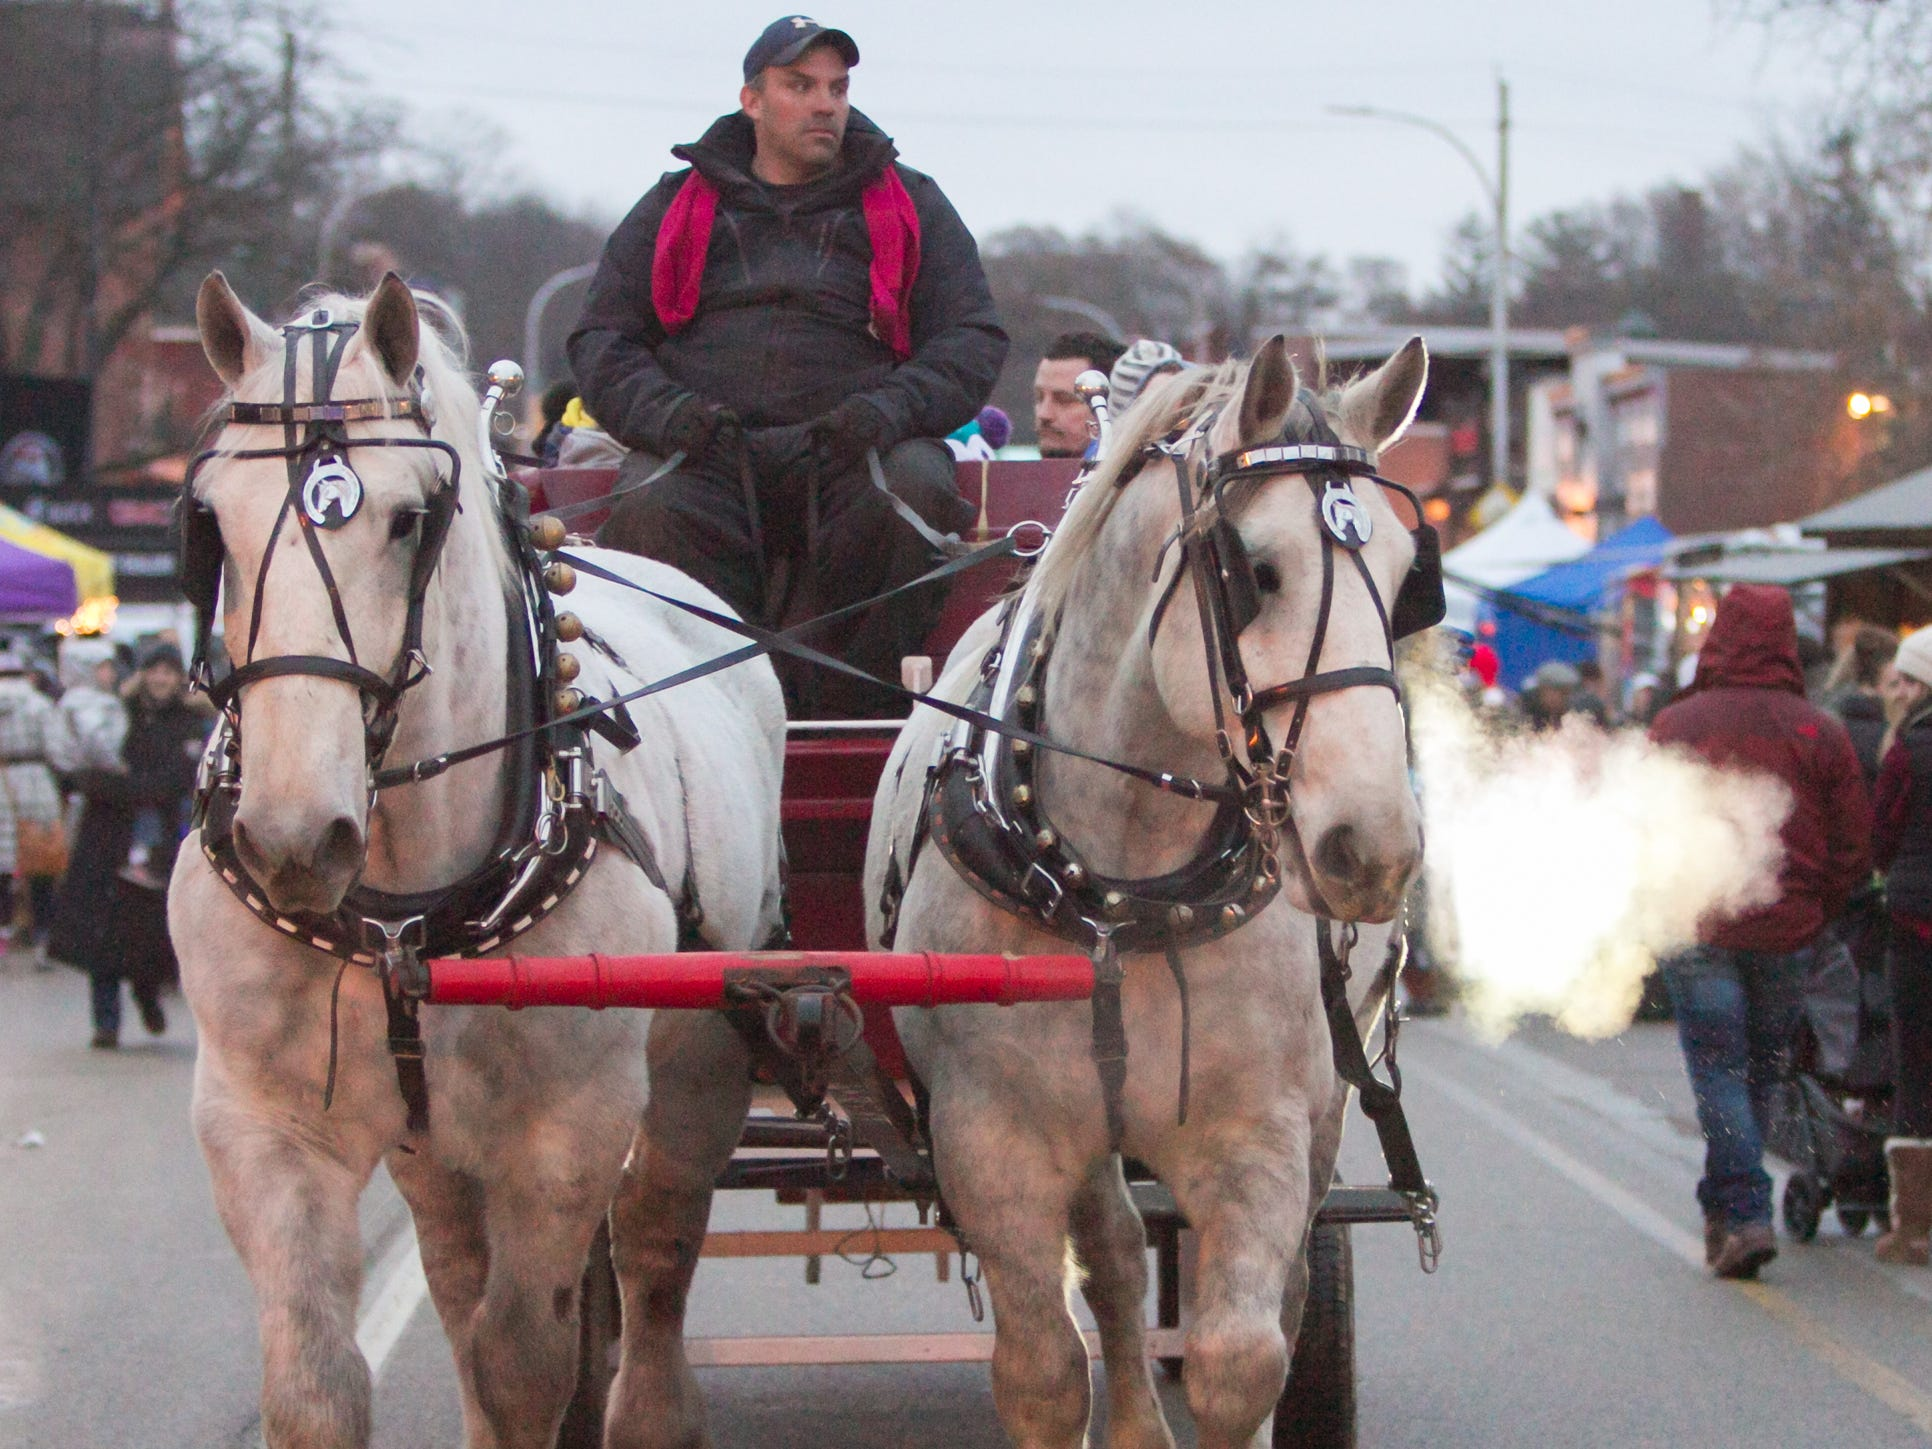 Mac, left, and Charlie pull a hay ride provided by Ann Arbor Carriage at Brighton's Holiday Glow Saturday, Nov. 17, 2018. Charlie exhales as light from a headlight on the carriage shines through the steam in his breath.